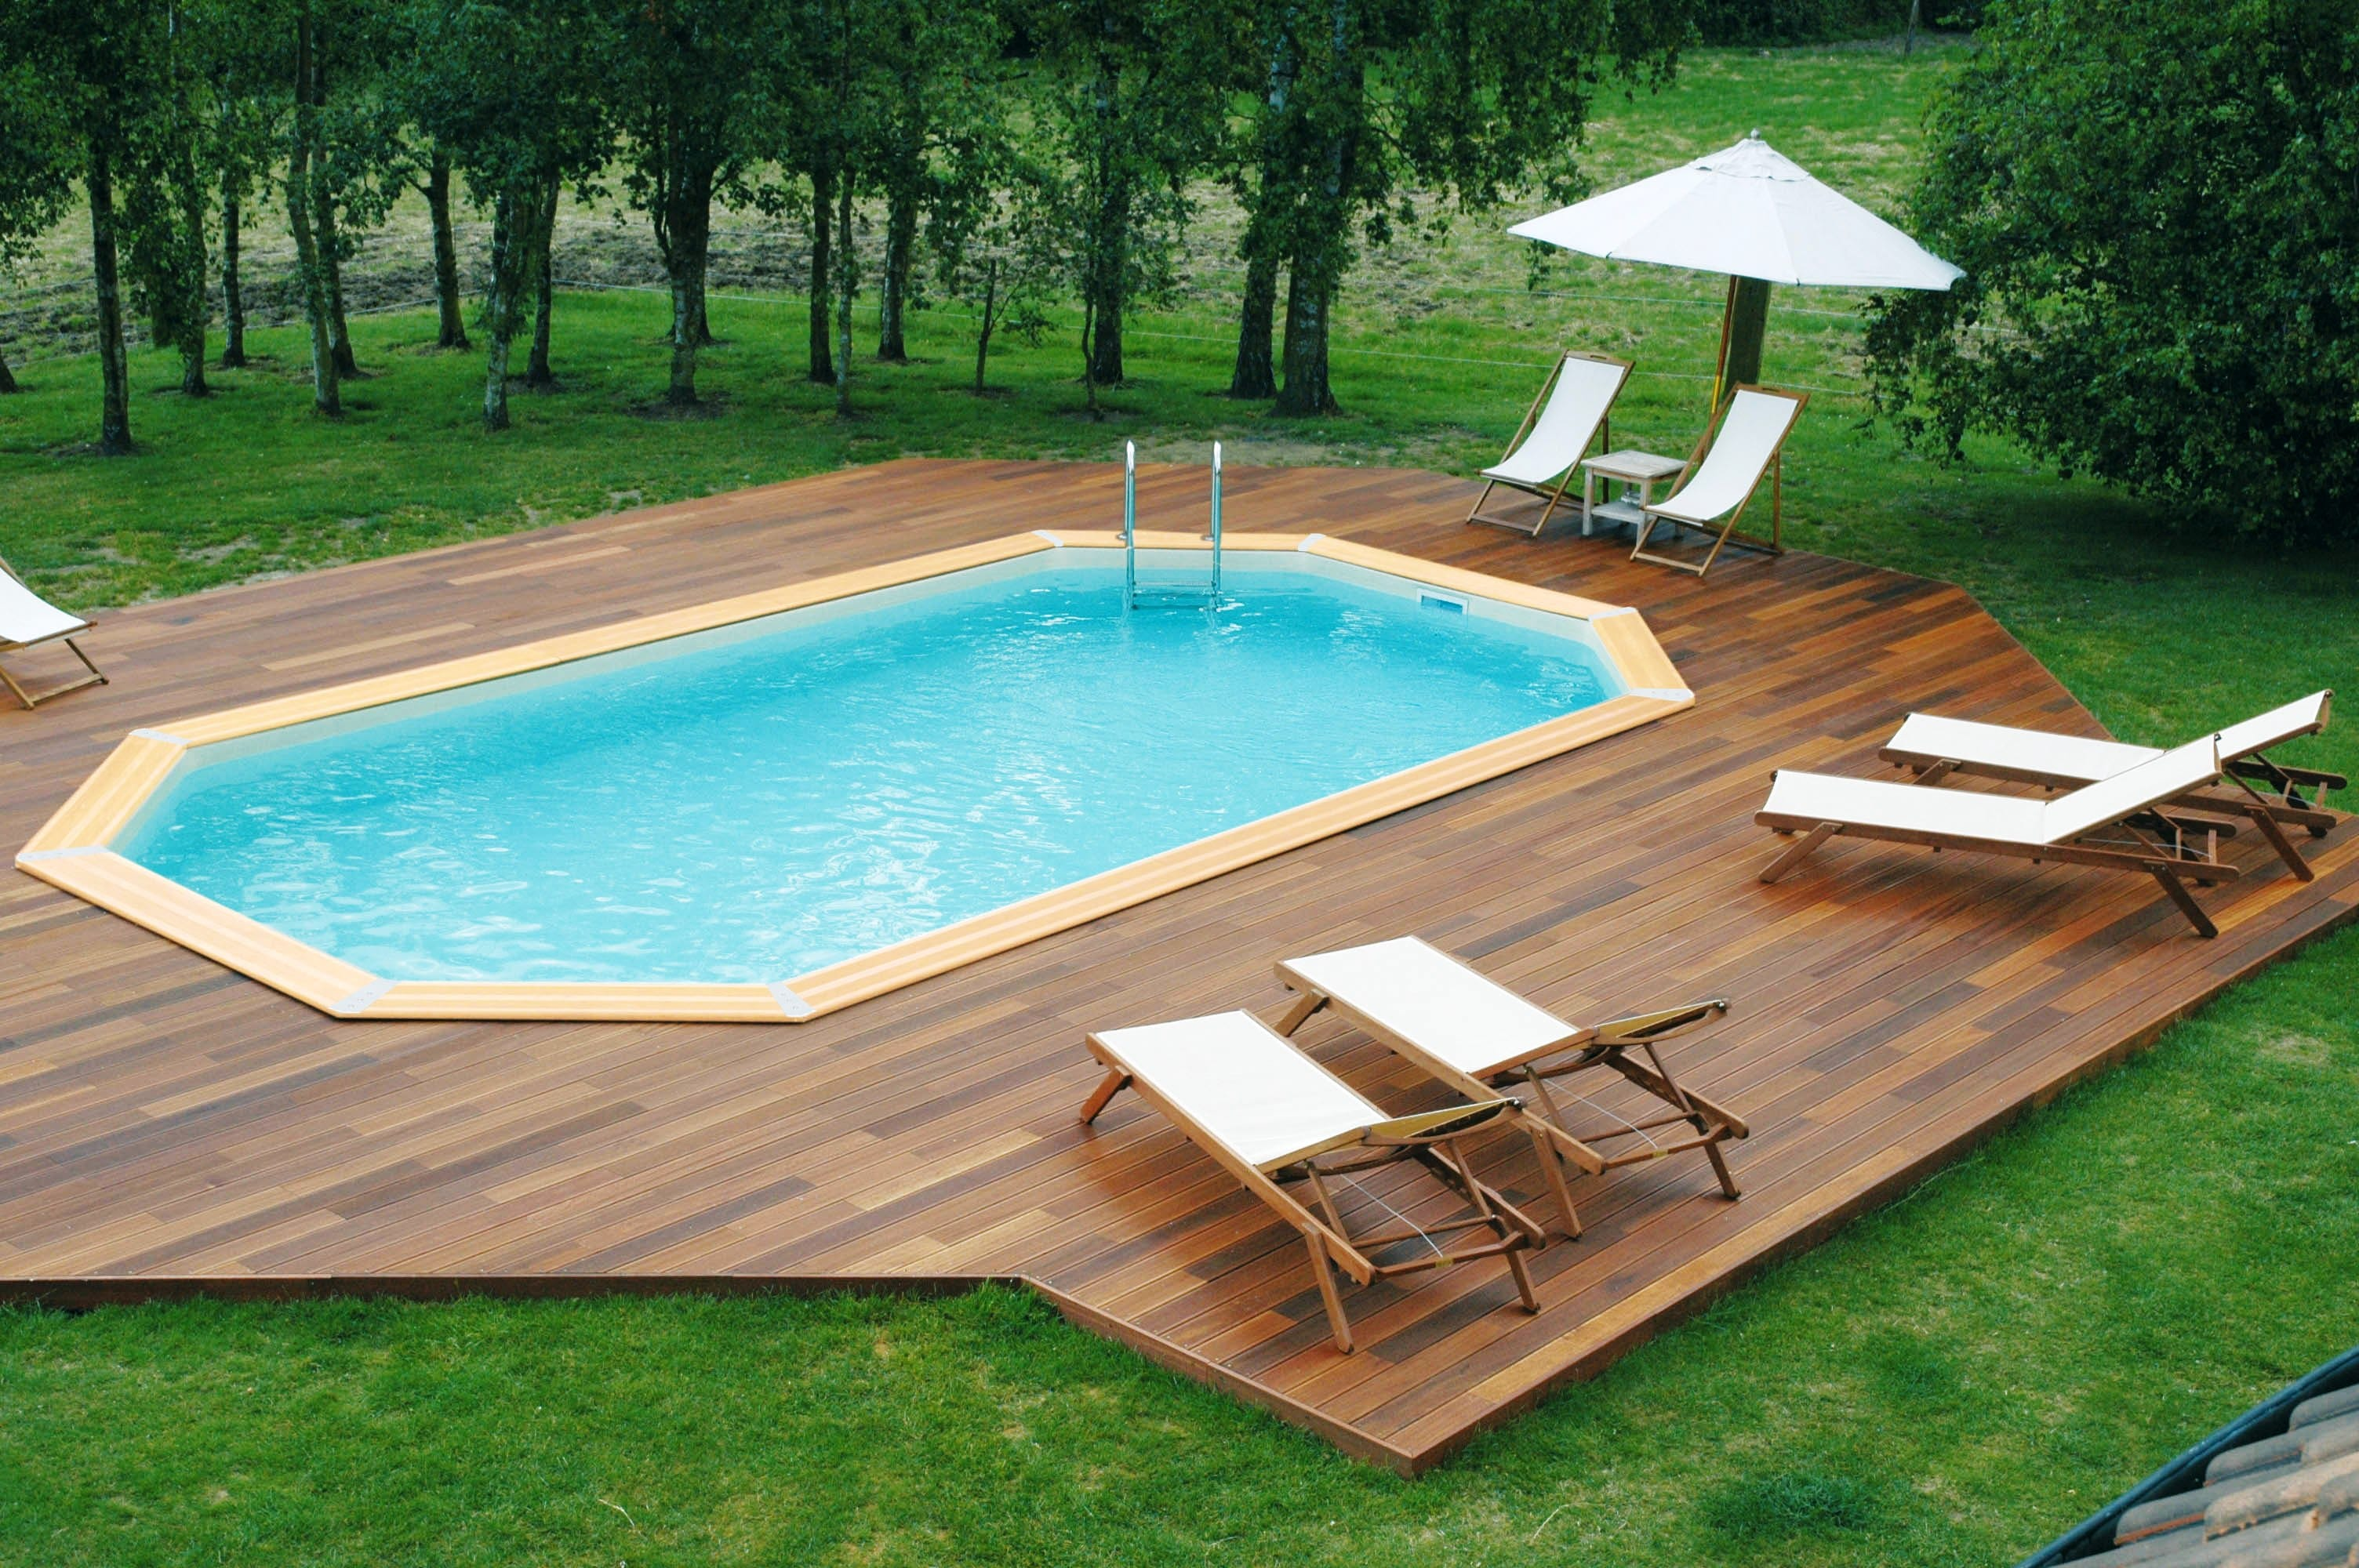 Piscine spa sauna bonnin for Piscine rectangulaire bois enterree